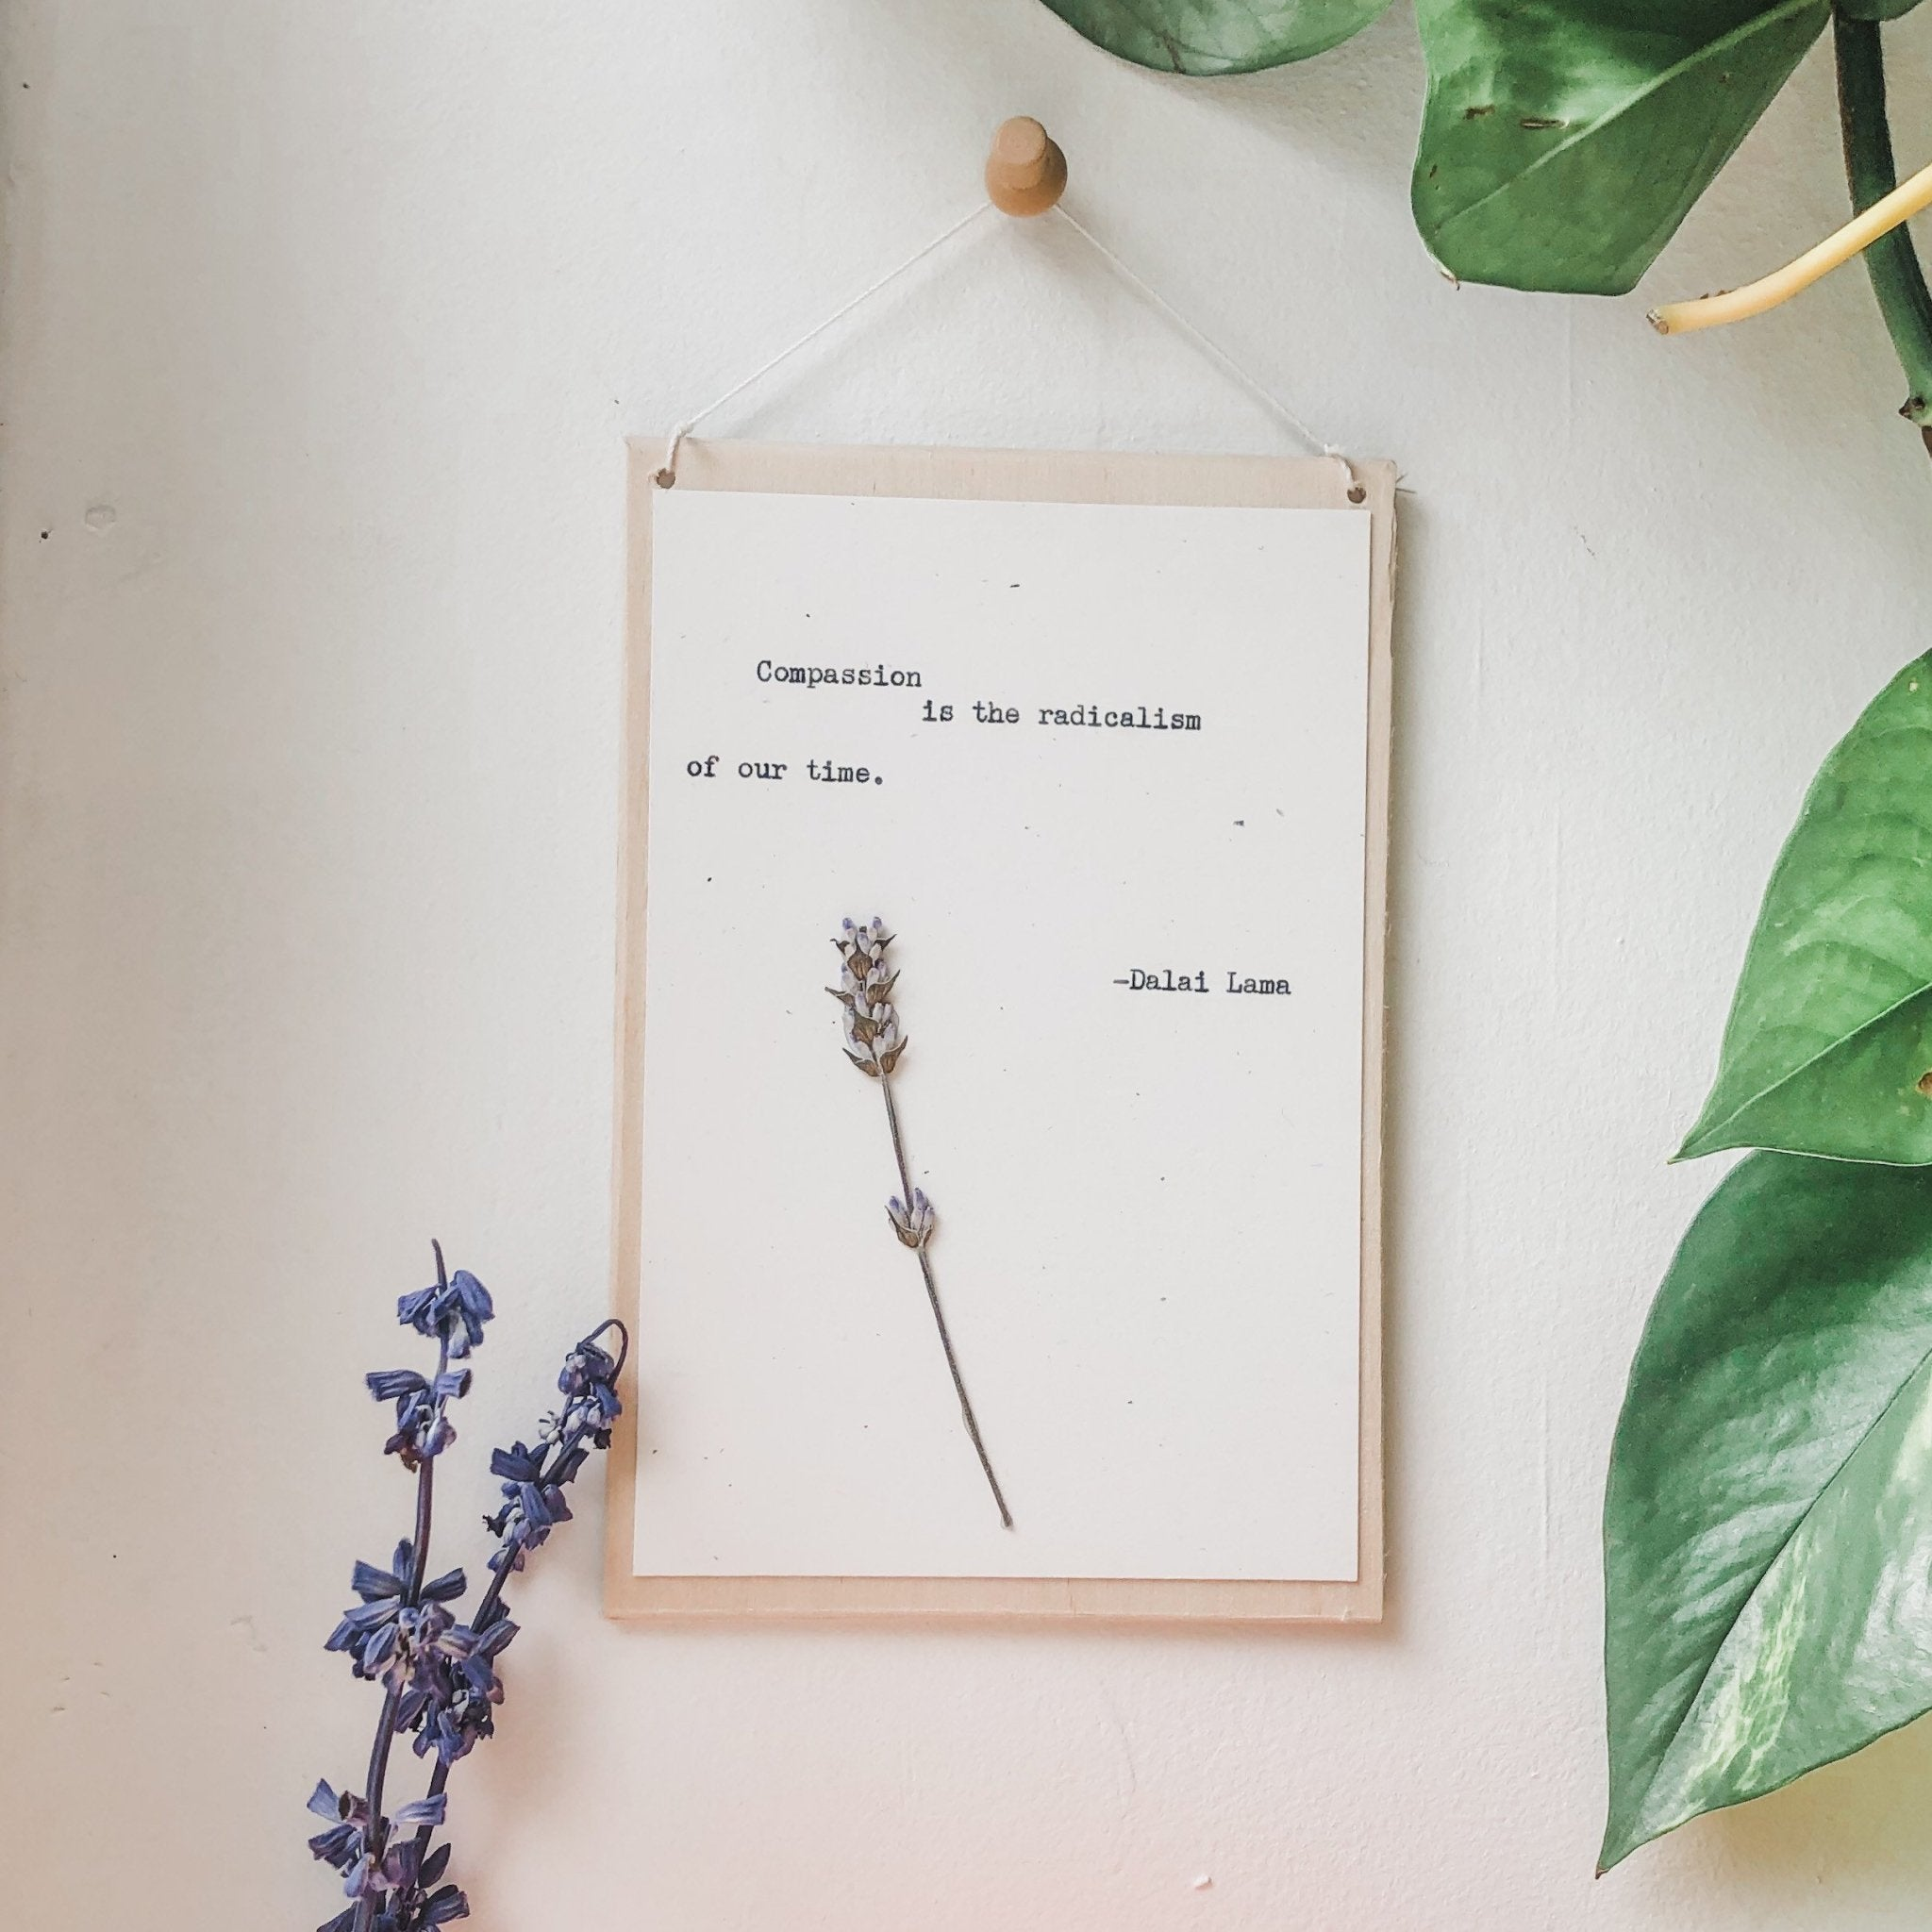 dalai lama, compassion is the radicalism of our time typed in typewriter font on white paper, mounted on birch wood and paired with a pressed flower. handmade décor by flora & phrase